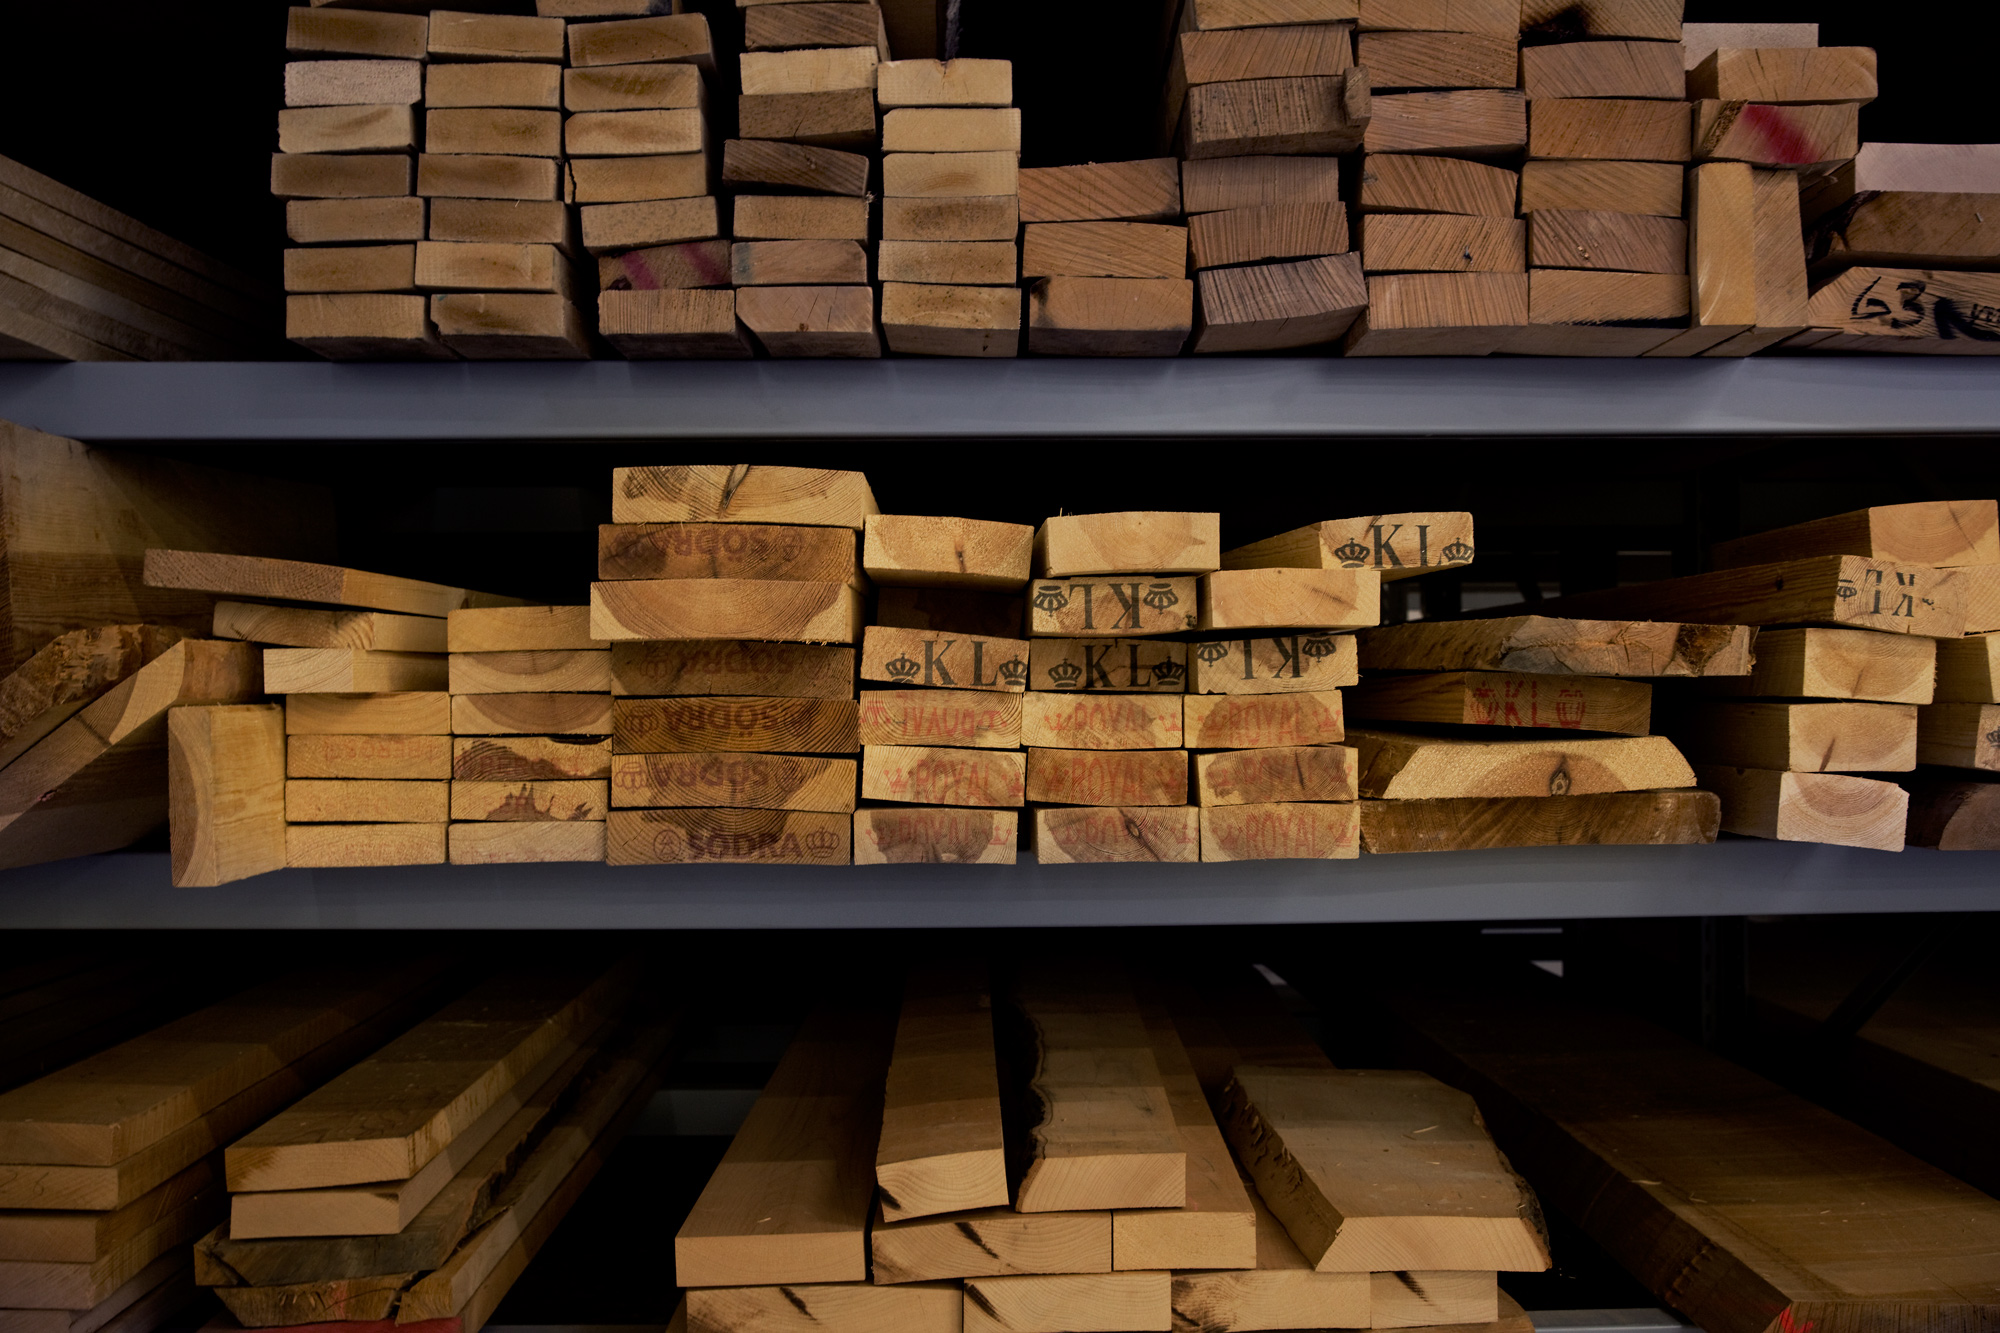 Planks of wood piled up on shelves.